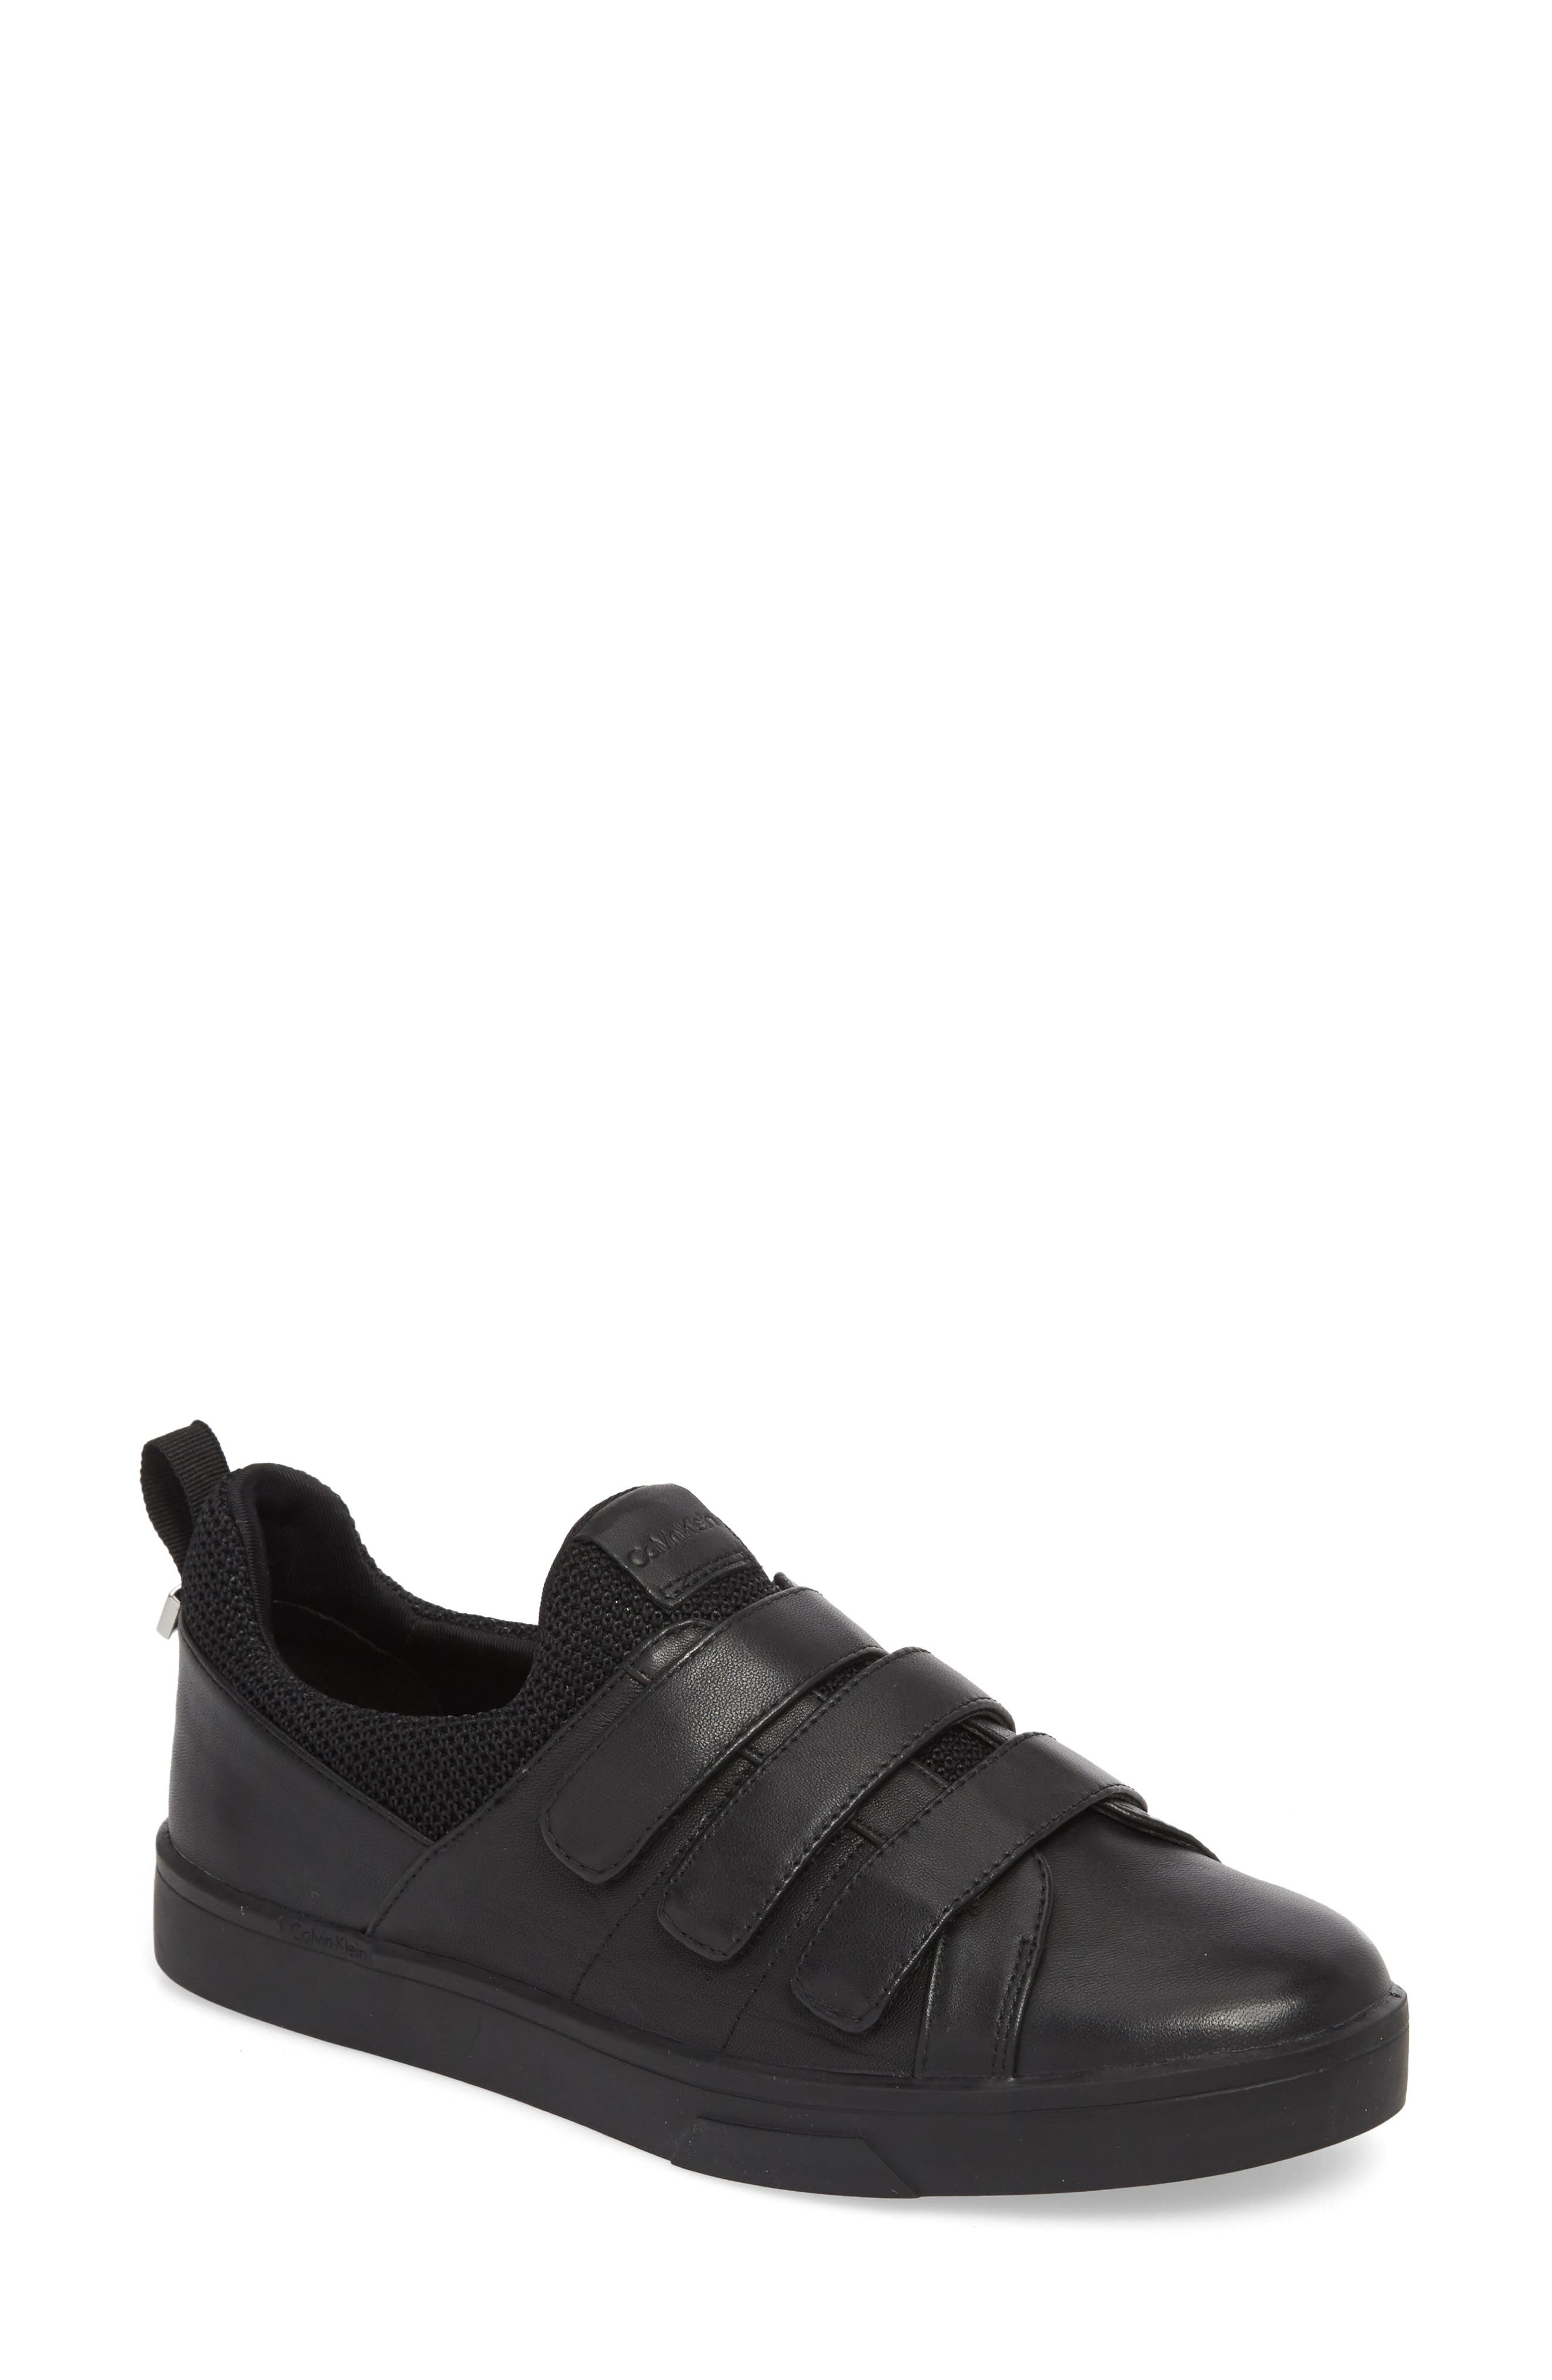 Irah Sneaker,                         Main,                         color, BLACK LEATHER